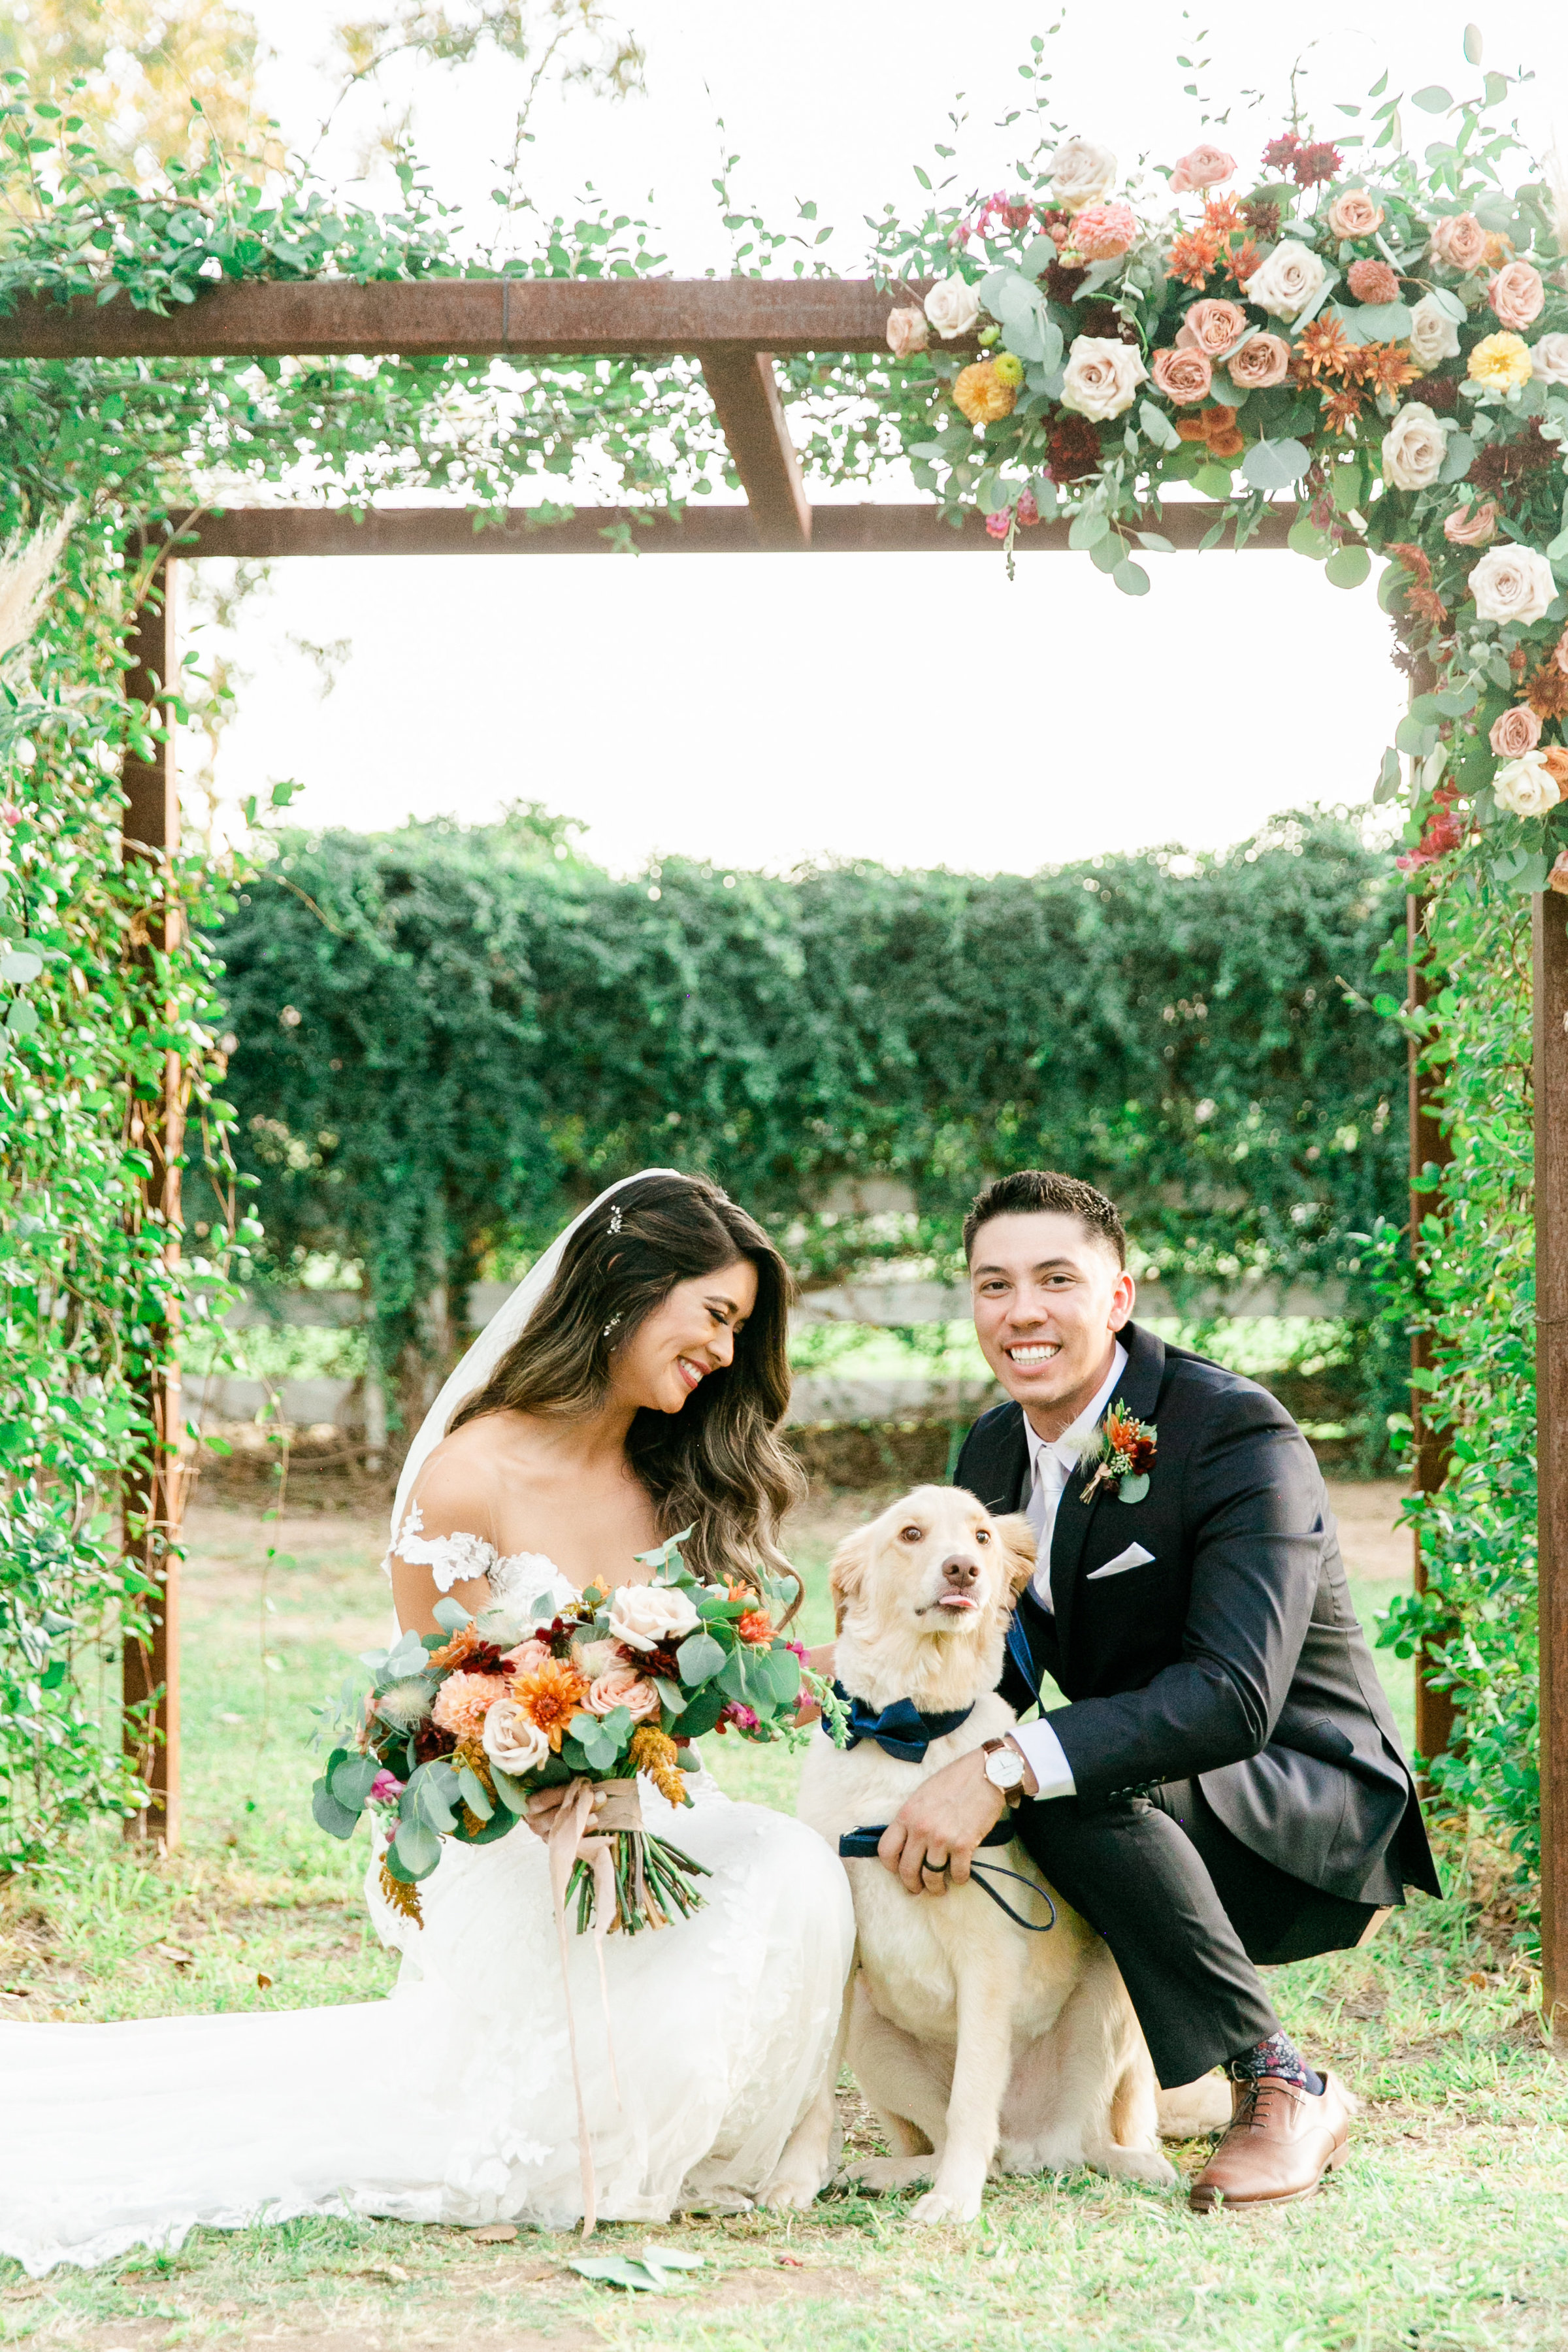 Karlie Colleen Photography - Phoenix Arizona - Farm At South Mountain Venue - Vanessa & Robert-698